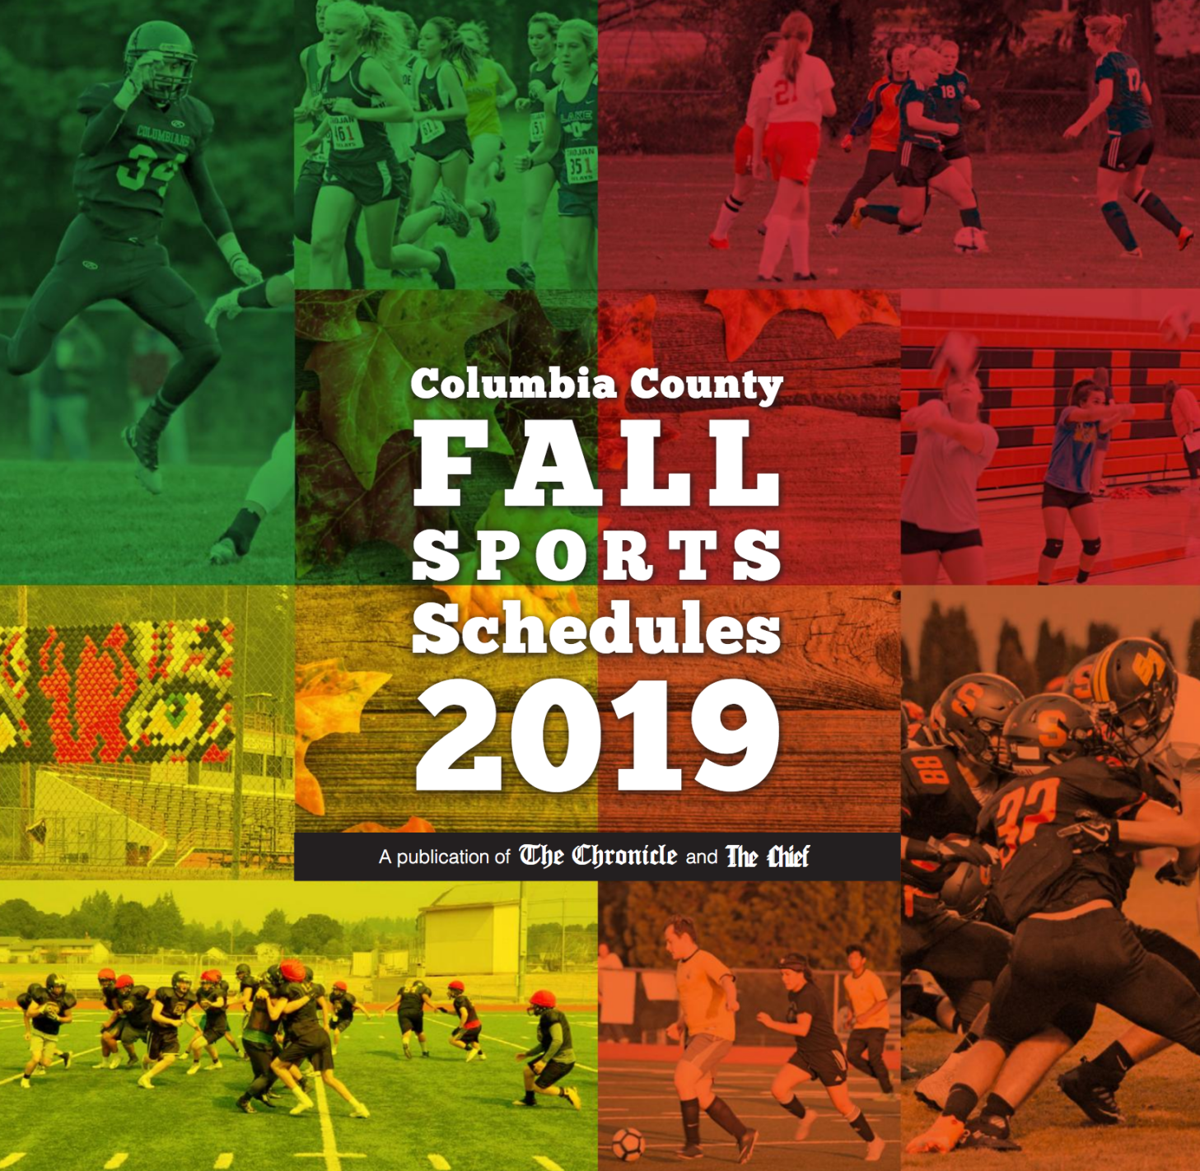 2019 Columbia County Fall Sports Schedules   Sports